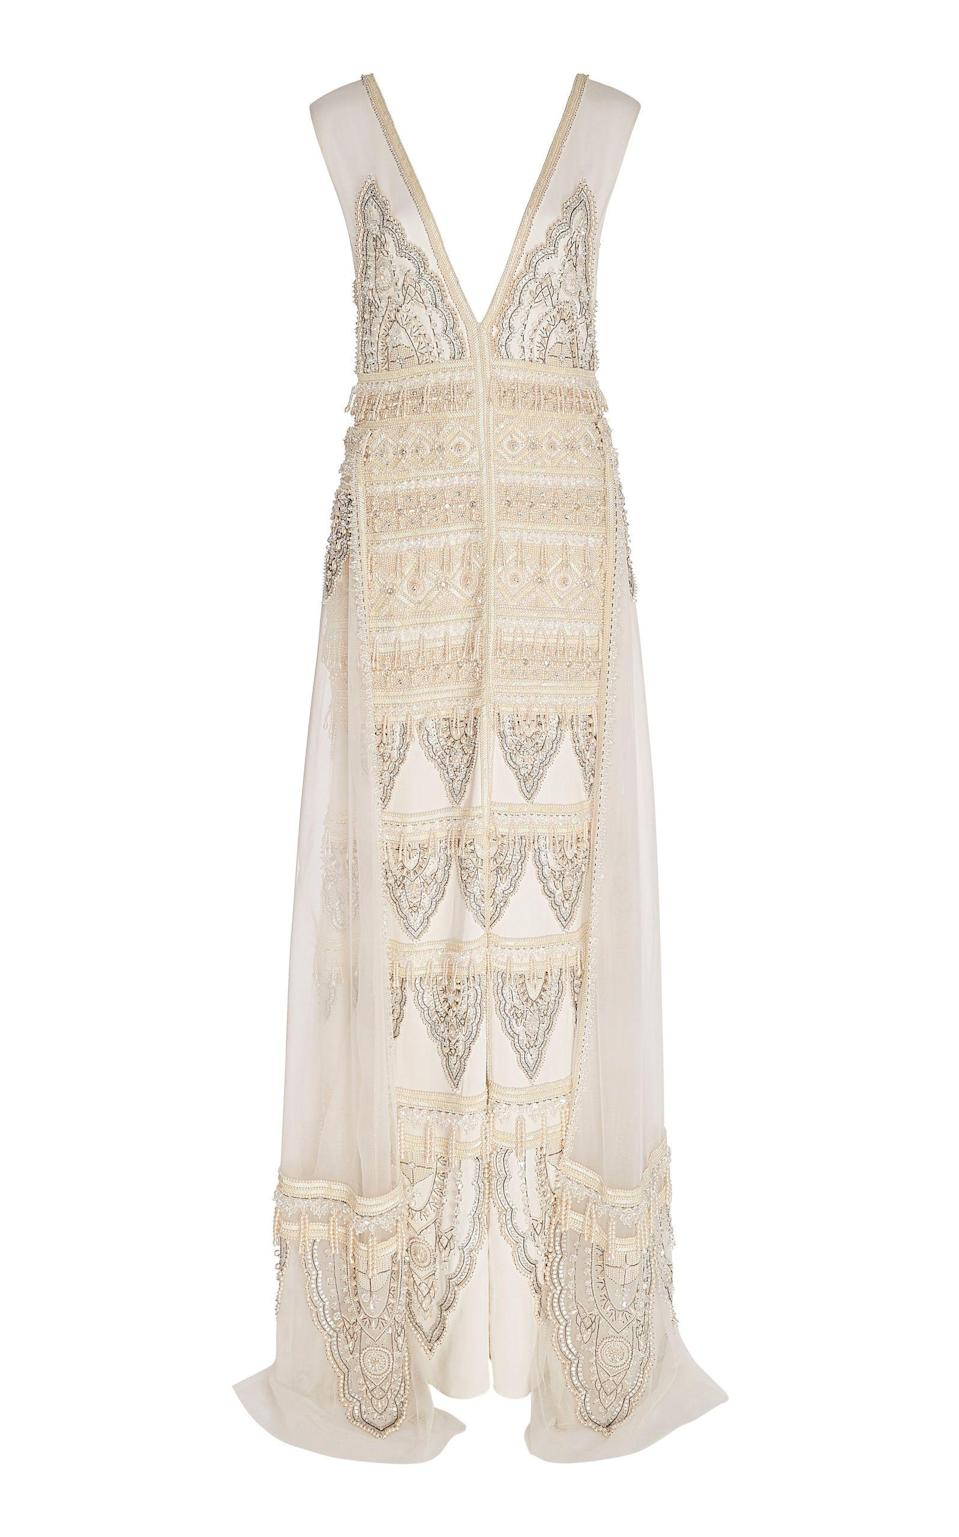 """<p><strong>Cucculelli Shaheen</strong></p><p>modaoperandi.com</p><p><strong>$16800.00</strong></p><p><a href=""""https://go.redirectingat.com?id=74968X1596630&url=https%3A%2F%2Fwww.modaoperandi.com%2Fcucculelli-shaheen-r20%2Fpearl-paisley-embroidered-silk-gown&sref=https%3A%2F%2Fwww.harpersbazaar.com%2Fwedding%2Fbridal-fashion%2Fg7503%2Foff-the-rack-wedding-dresses%2F"""" rel=""""nofollow noopener"""" target=""""_blank"""" data-ylk=""""slk:SHOP NOW"""" class=""""link rapid-noclick-resp"""">SHOP NOW</a></p><p>A beaded column silhouette with a detachable sheer skirt gives you the feeling of two looks in one, ideal for an intimate backyard ceremony and private reception. </p>"""